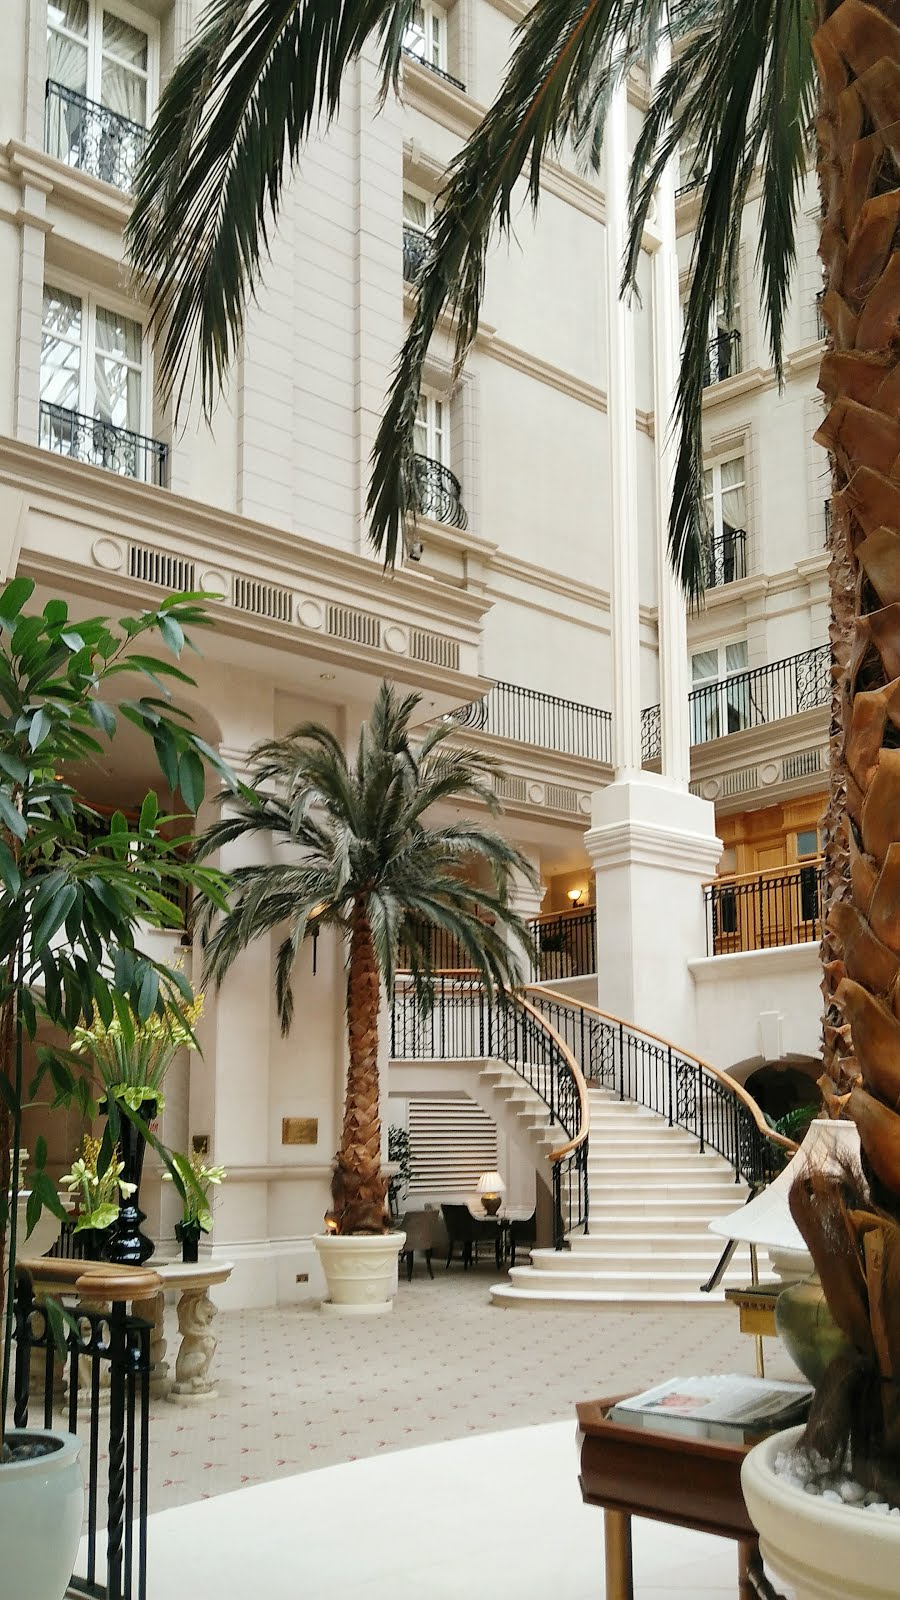 The Winter Garden at the Landmark Hotel, London